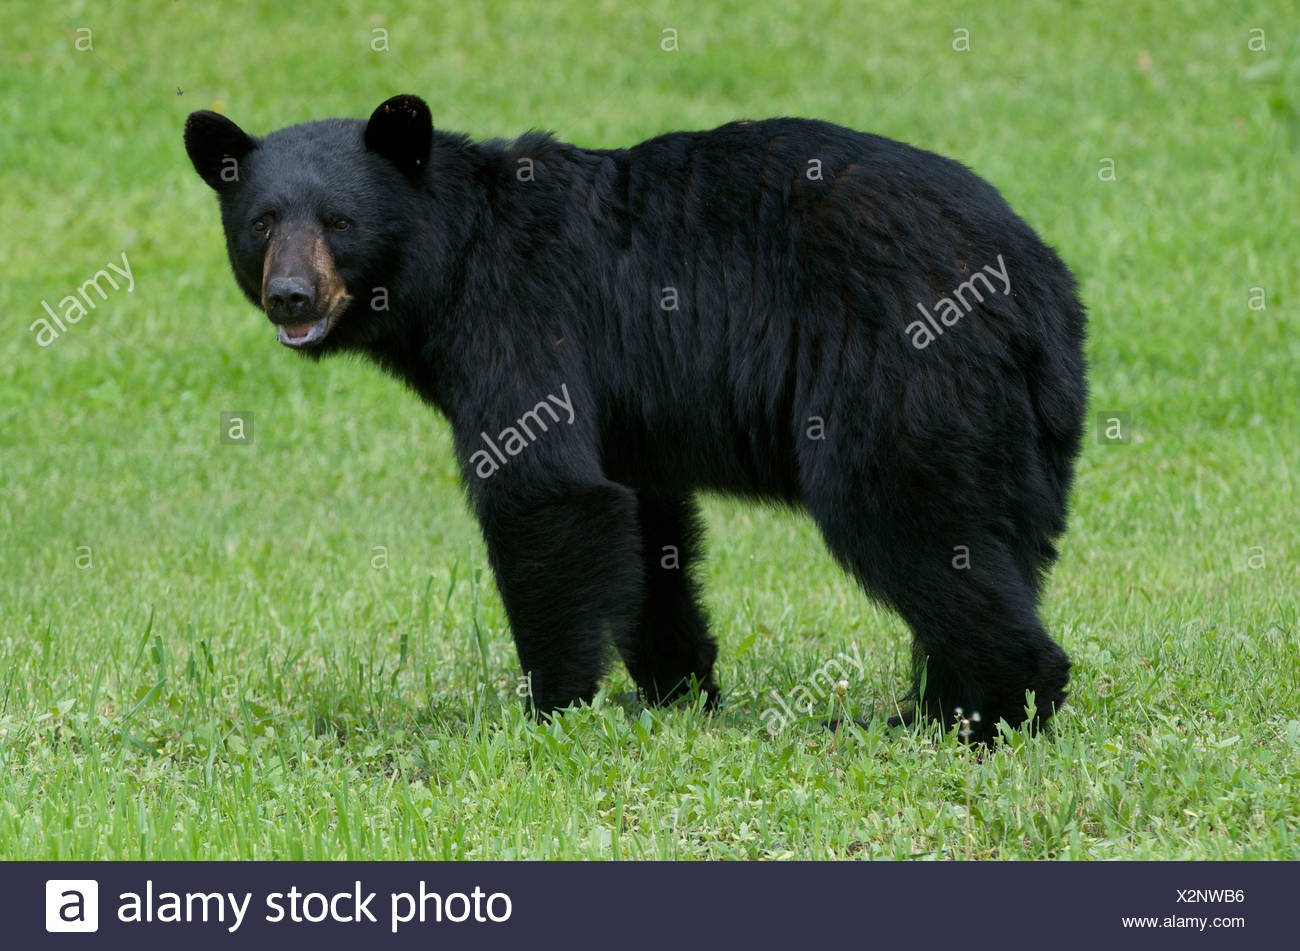 A wild male Black Bear (Ursus americanus) with flies buzzing around his head in Sleeping Giant Provincial Park, Ontario, Canada - Stock Image